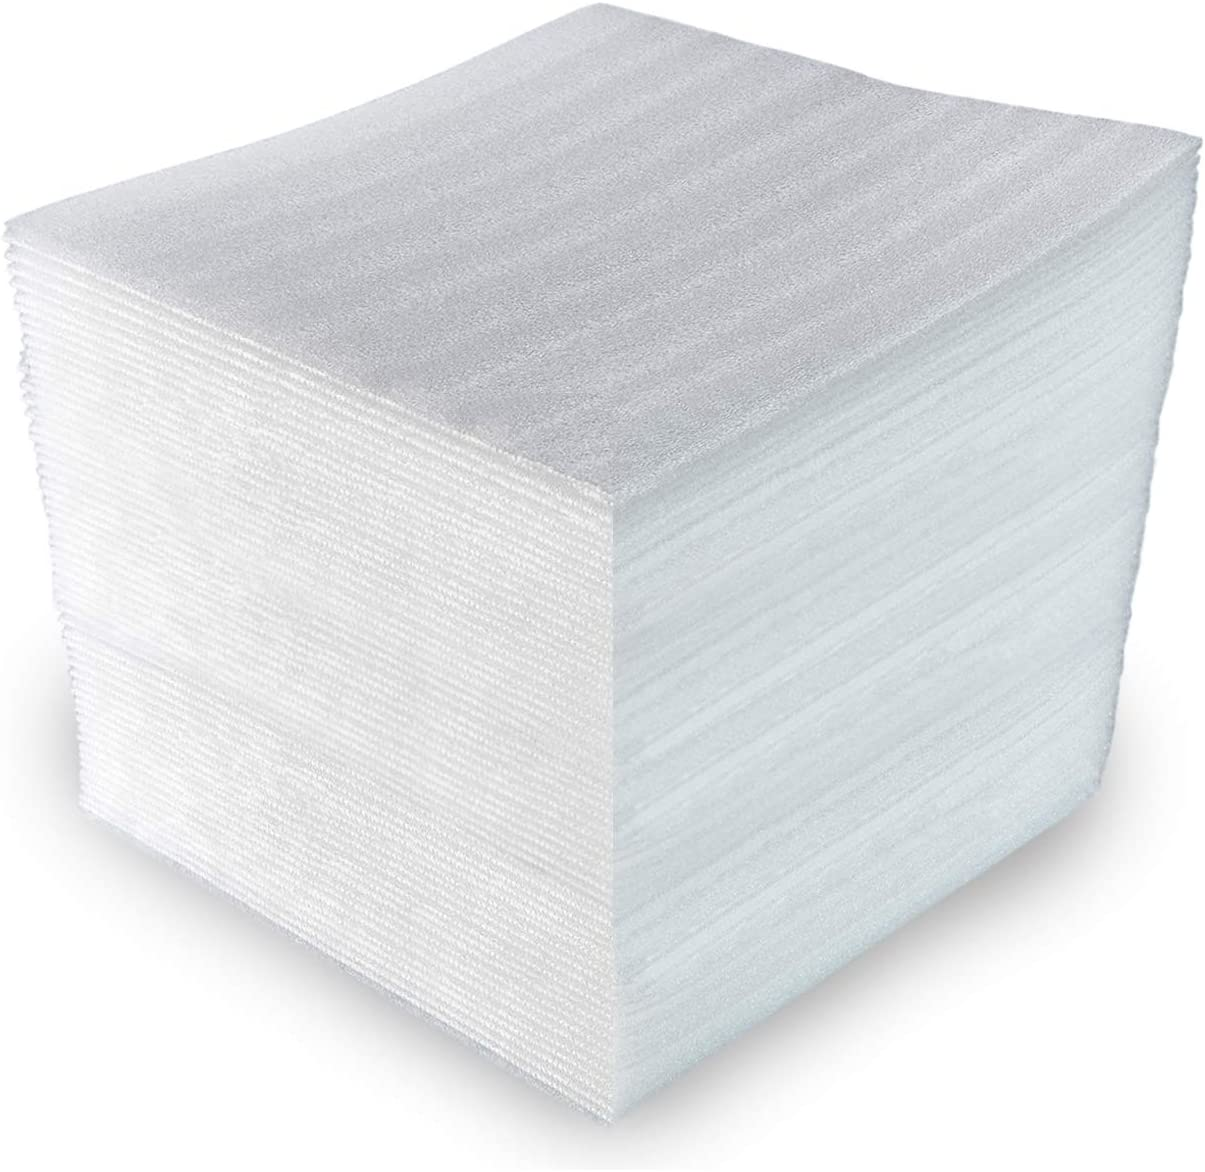 enKo 12 x Inch 8000-Pack Inexpensive Foam Moving Shippi In a popularity Wrap for Sheets